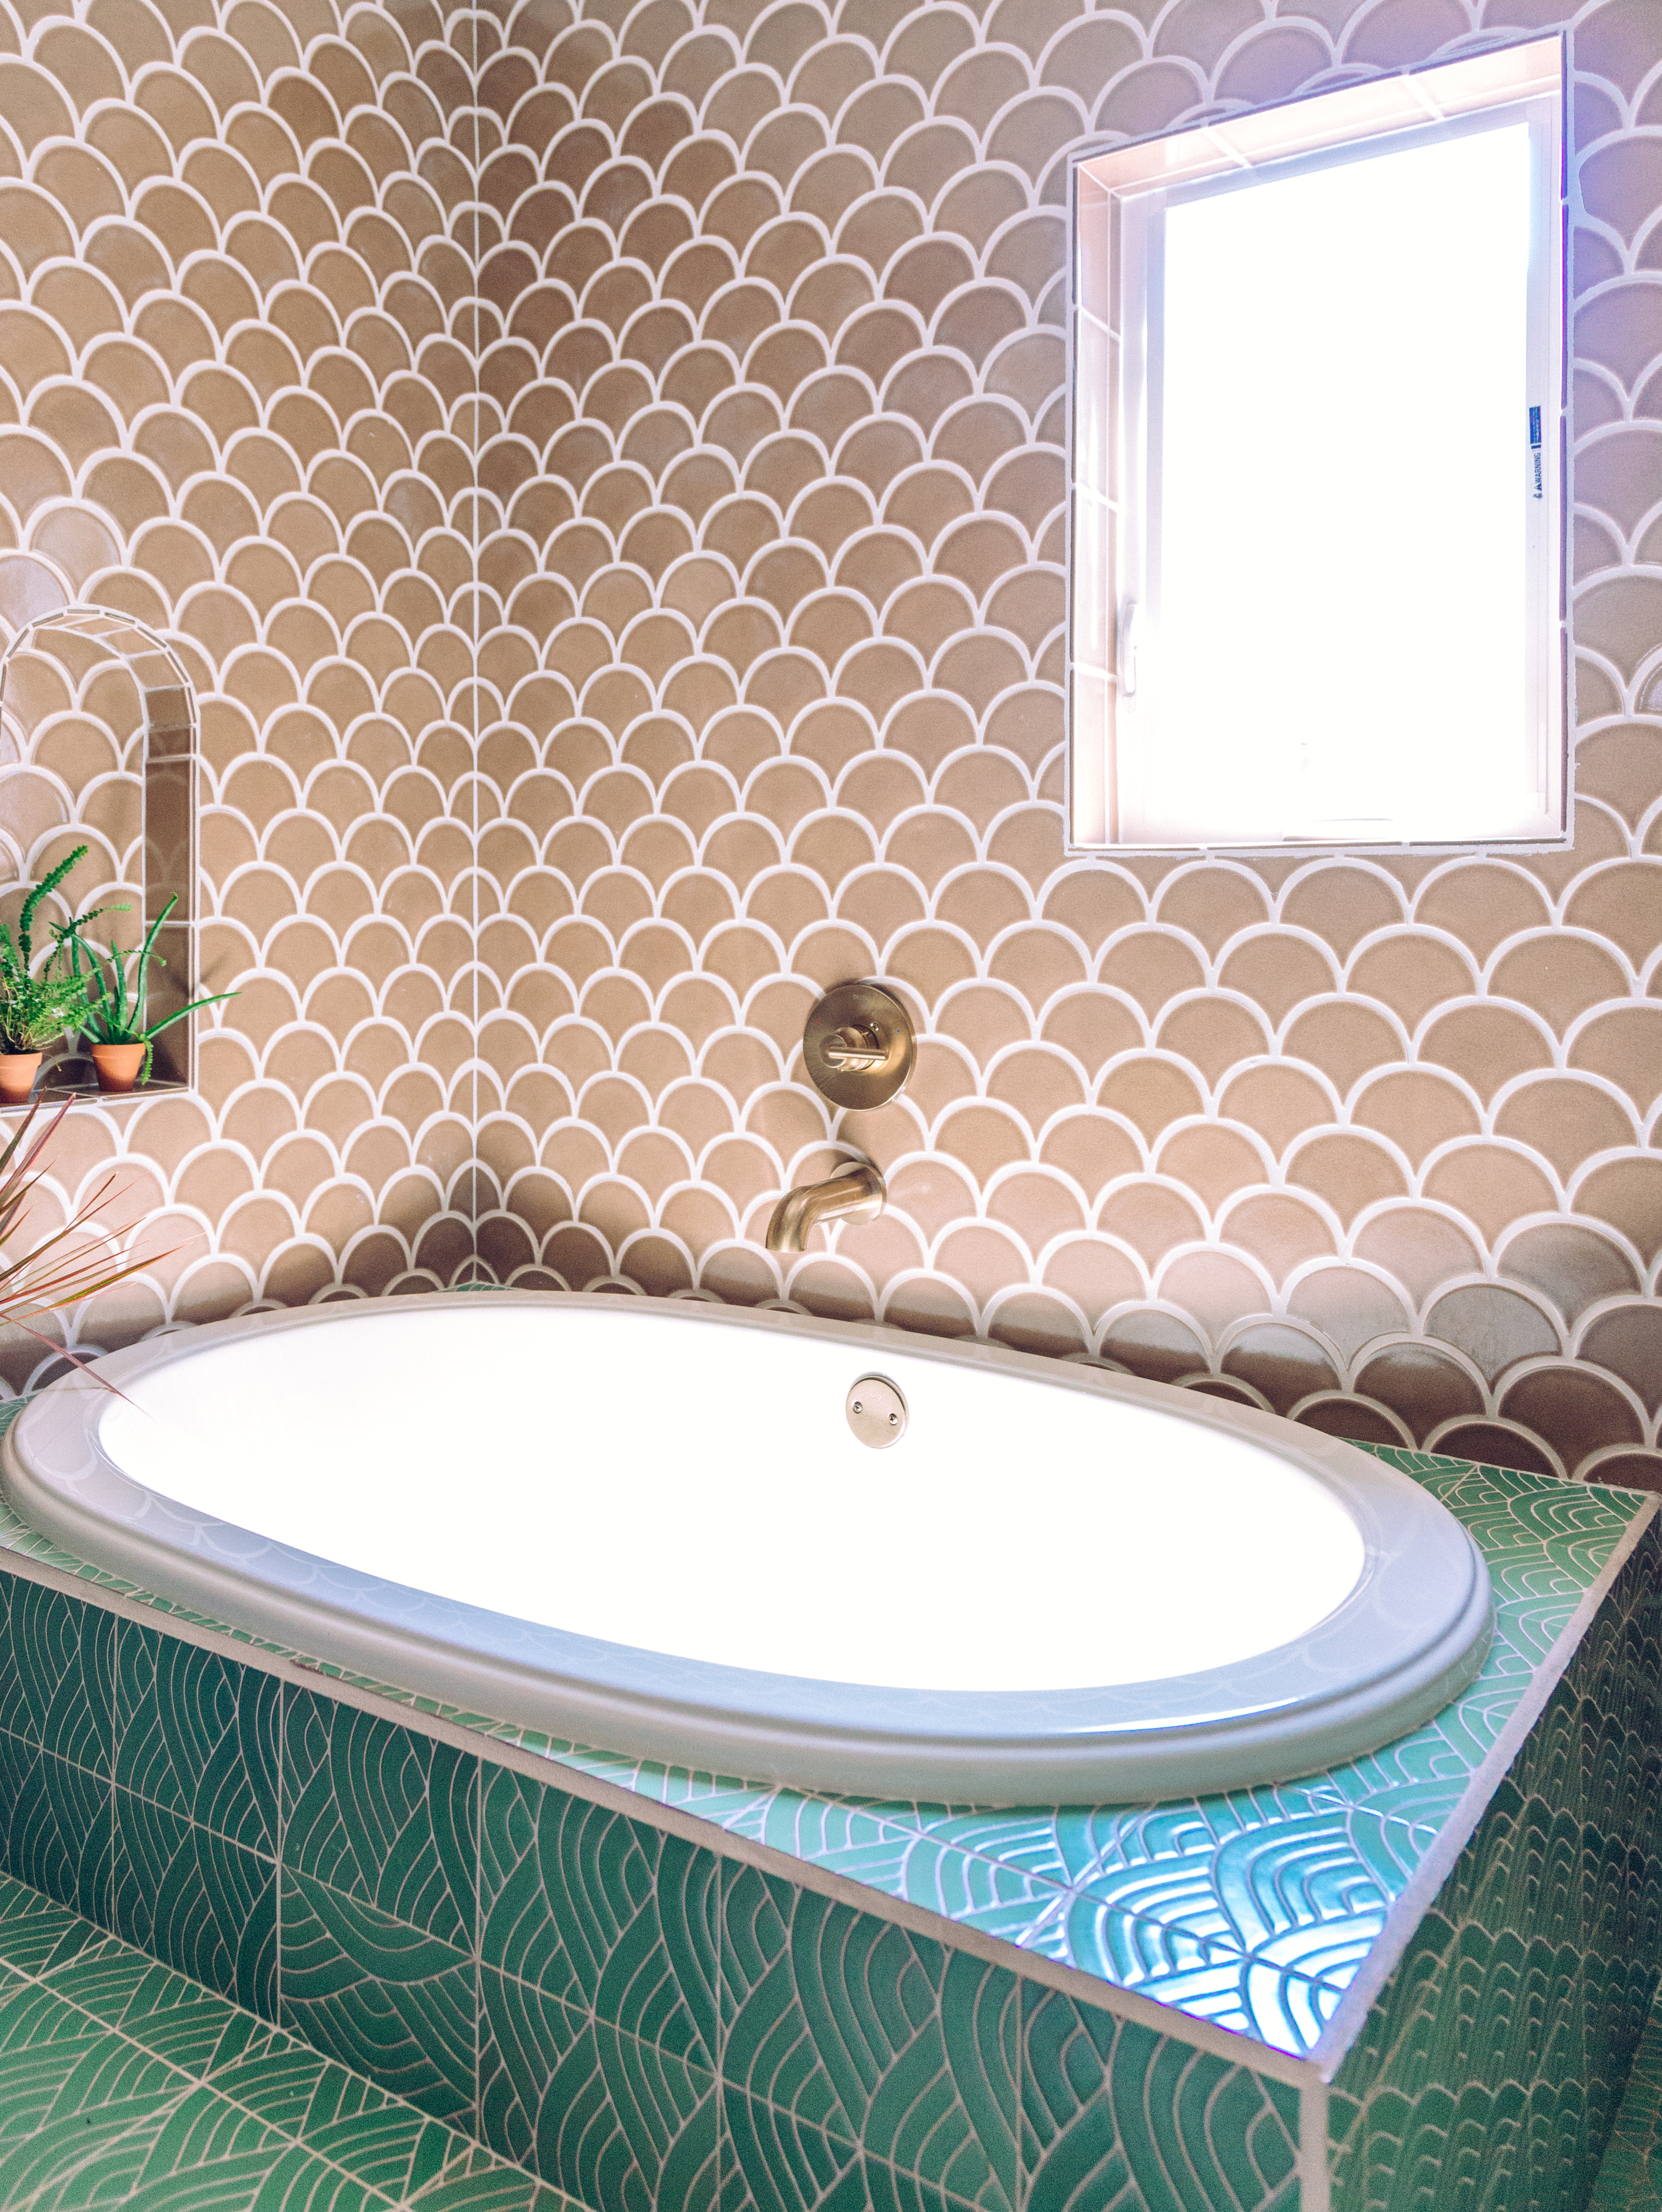 Q3_2018_image_residential_influencer_full-rights_Justina_Faith_Blakeney_parents_condo_masterbath_wall_niche_tile_nutmeg_ogee_drop_floor_handpainted_summit_green_motif_tub_surround_full.jpg?mtime=20181008111004#asset:420149